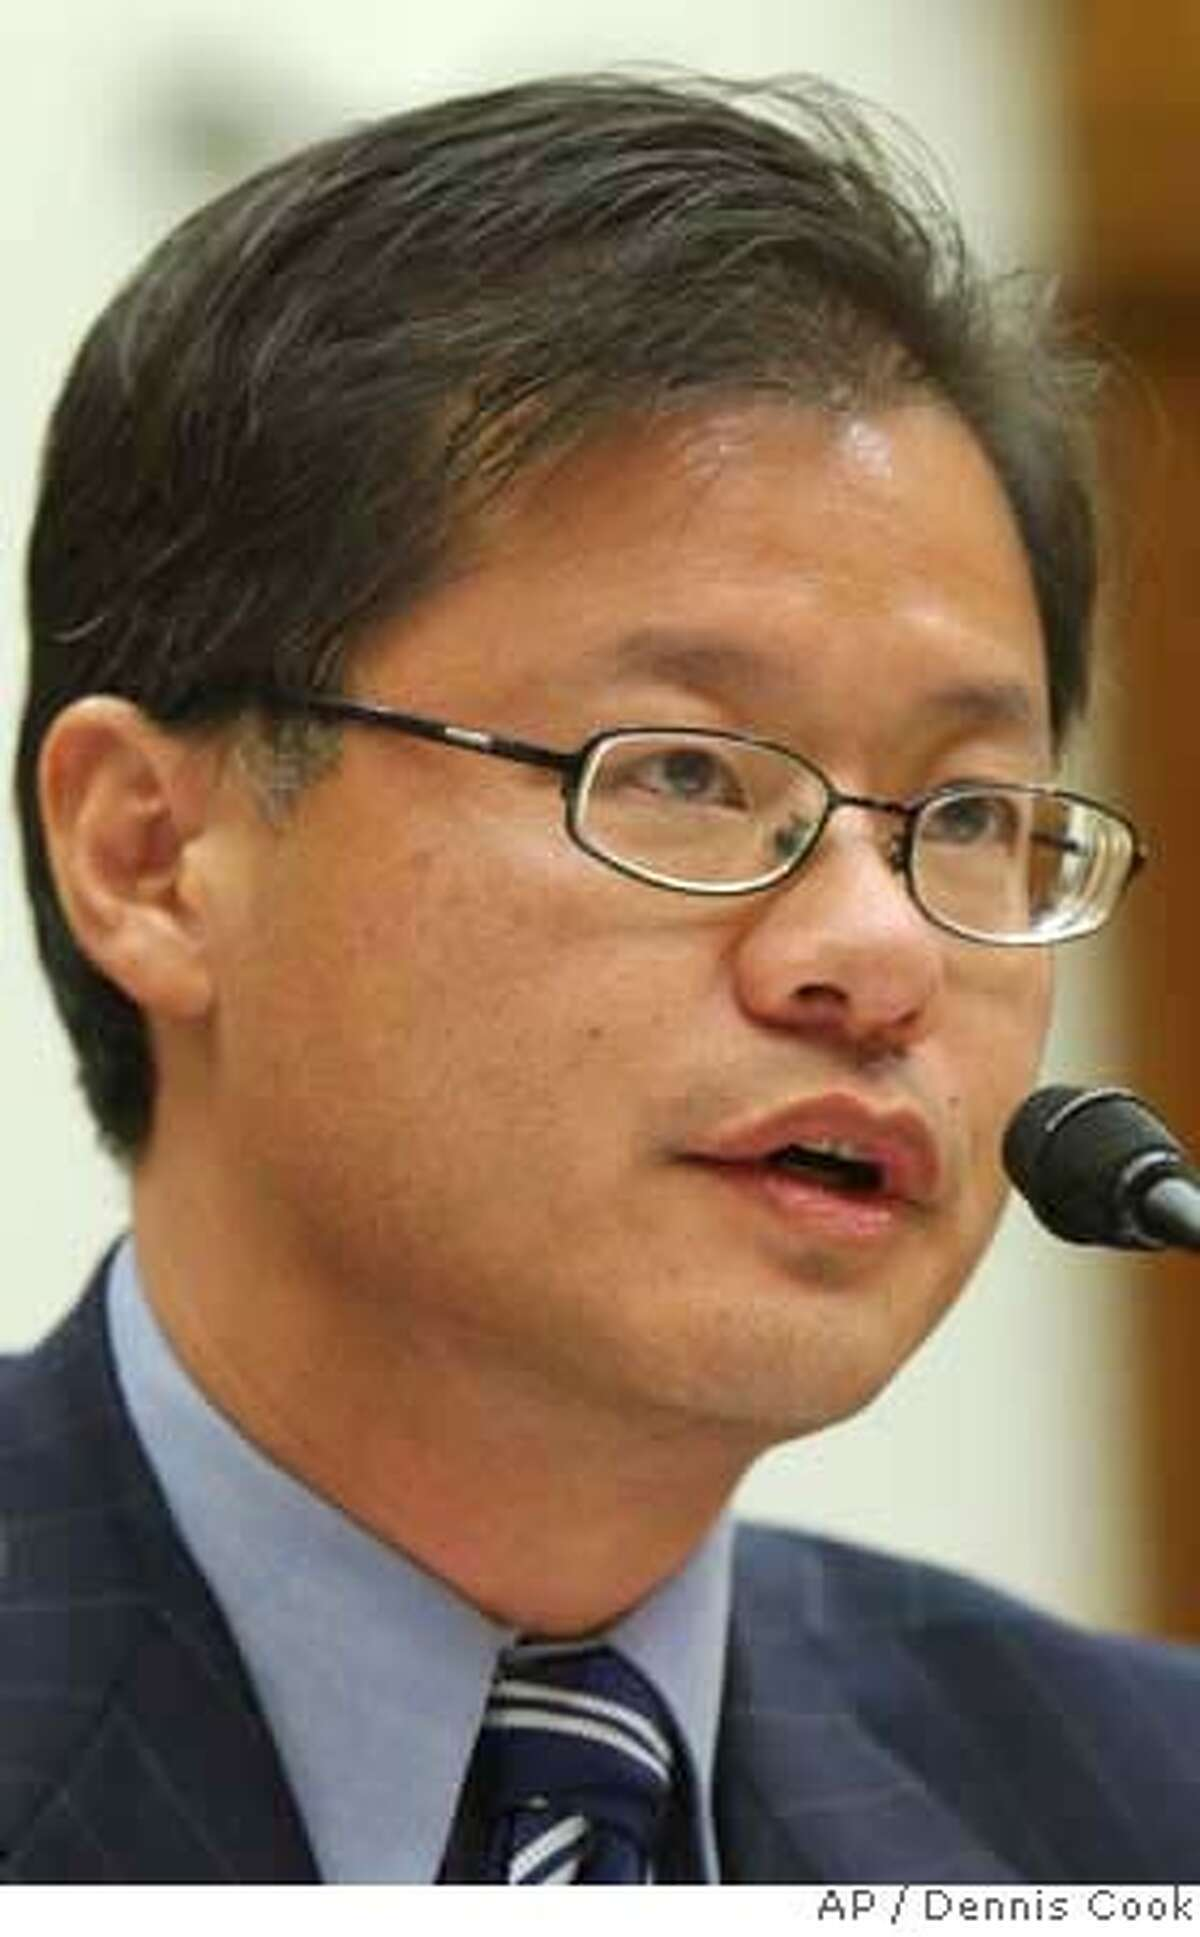 Yahoo Chief Executive Jerry Yang testifies on Capitol Hill in Washington, Tuesday, Nov. 6, 2007, before the House Foreign Affairs Committee. (AP Photo/Dennis Cook)